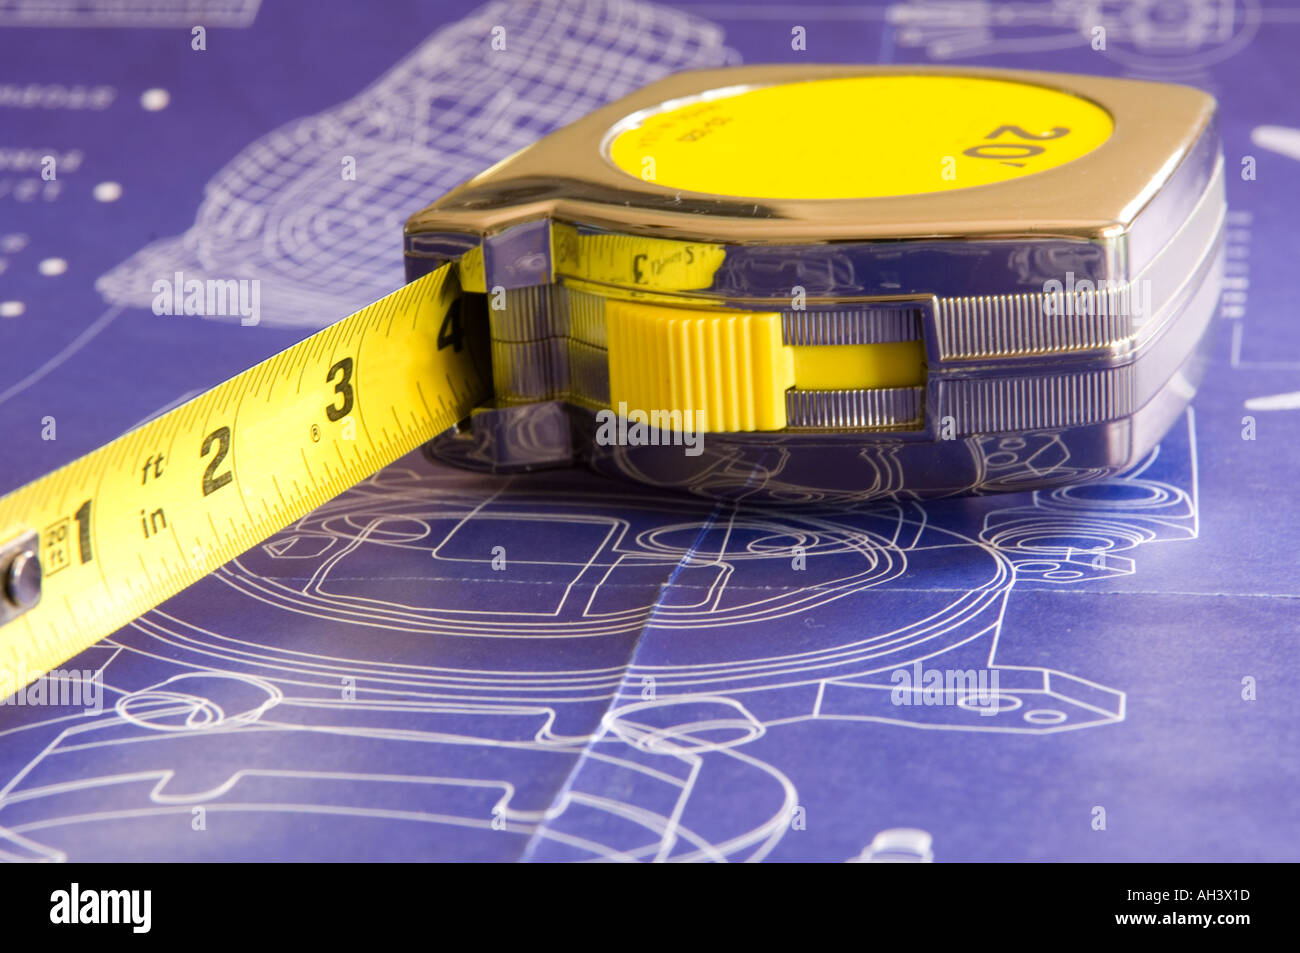 Tape measure on top of blueprints - Stock Image